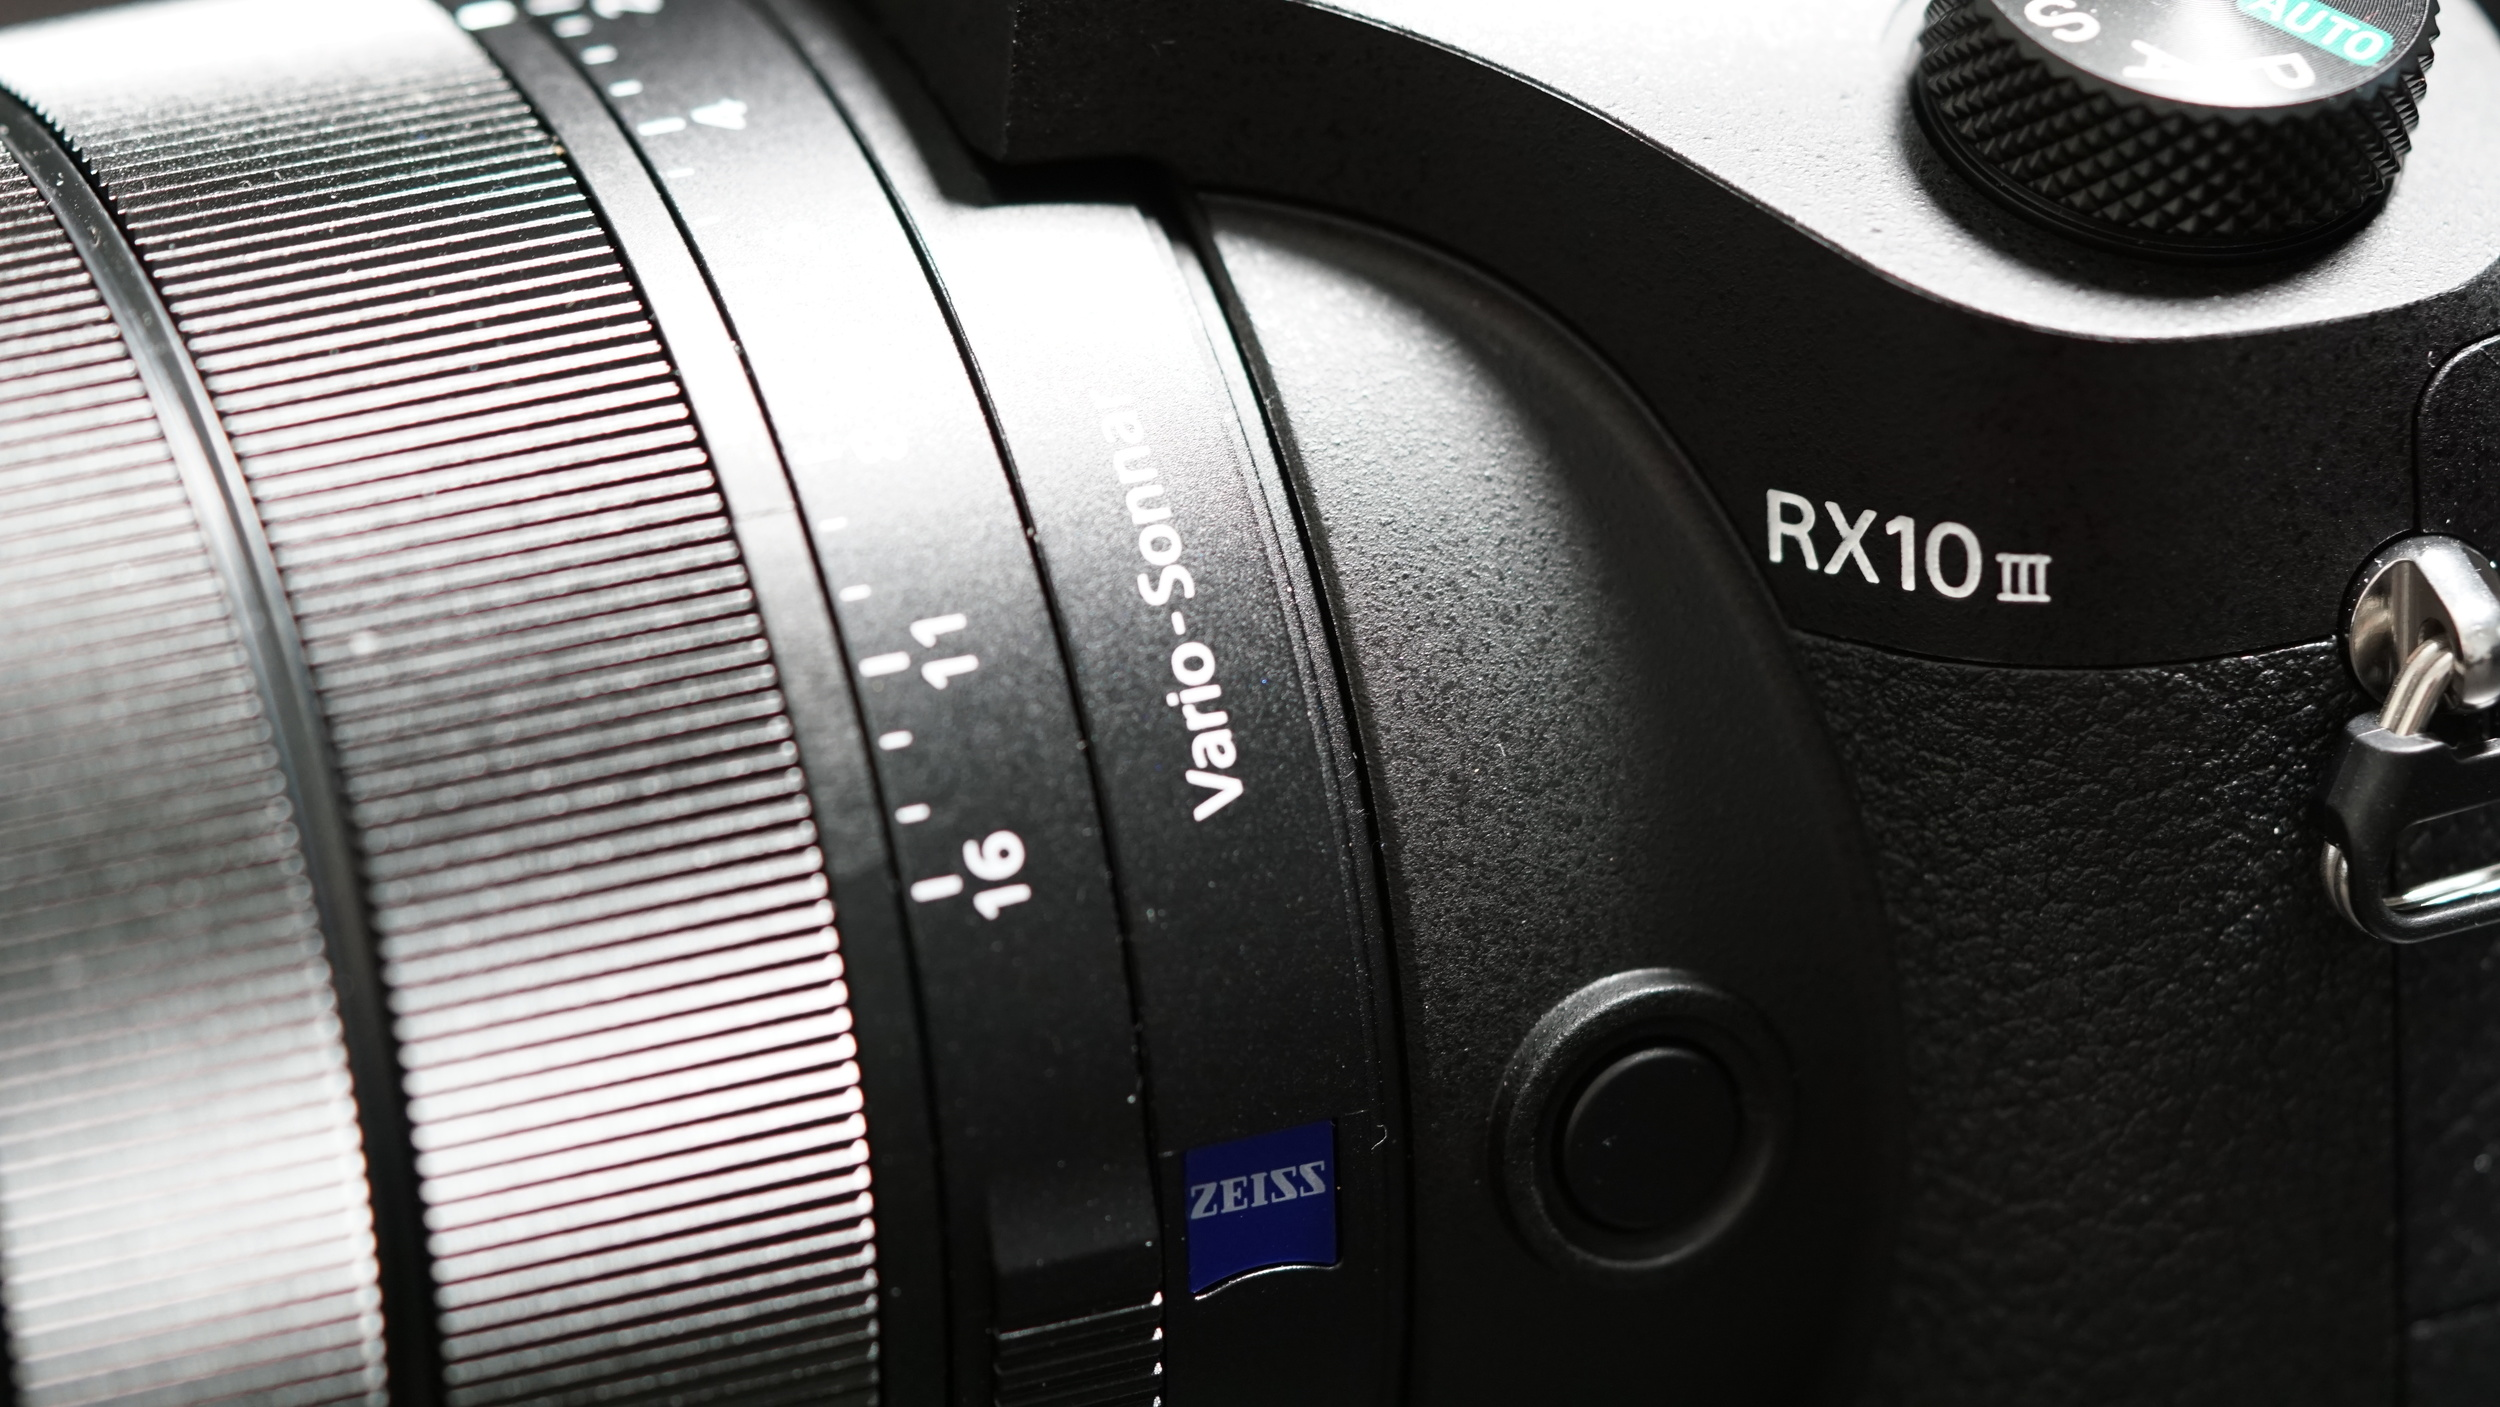 """Sony's just started shipping the RX10 III, a 4K-recording,1"""" backside illuminated stacked 20 megapixel sensor camera with built-in 24-600mm (!) 35mm full frame equivalent power zoom lens by Zeiss. It's  $1,498 at B&H, in stock now . Photo by Hugh Brownstone"""